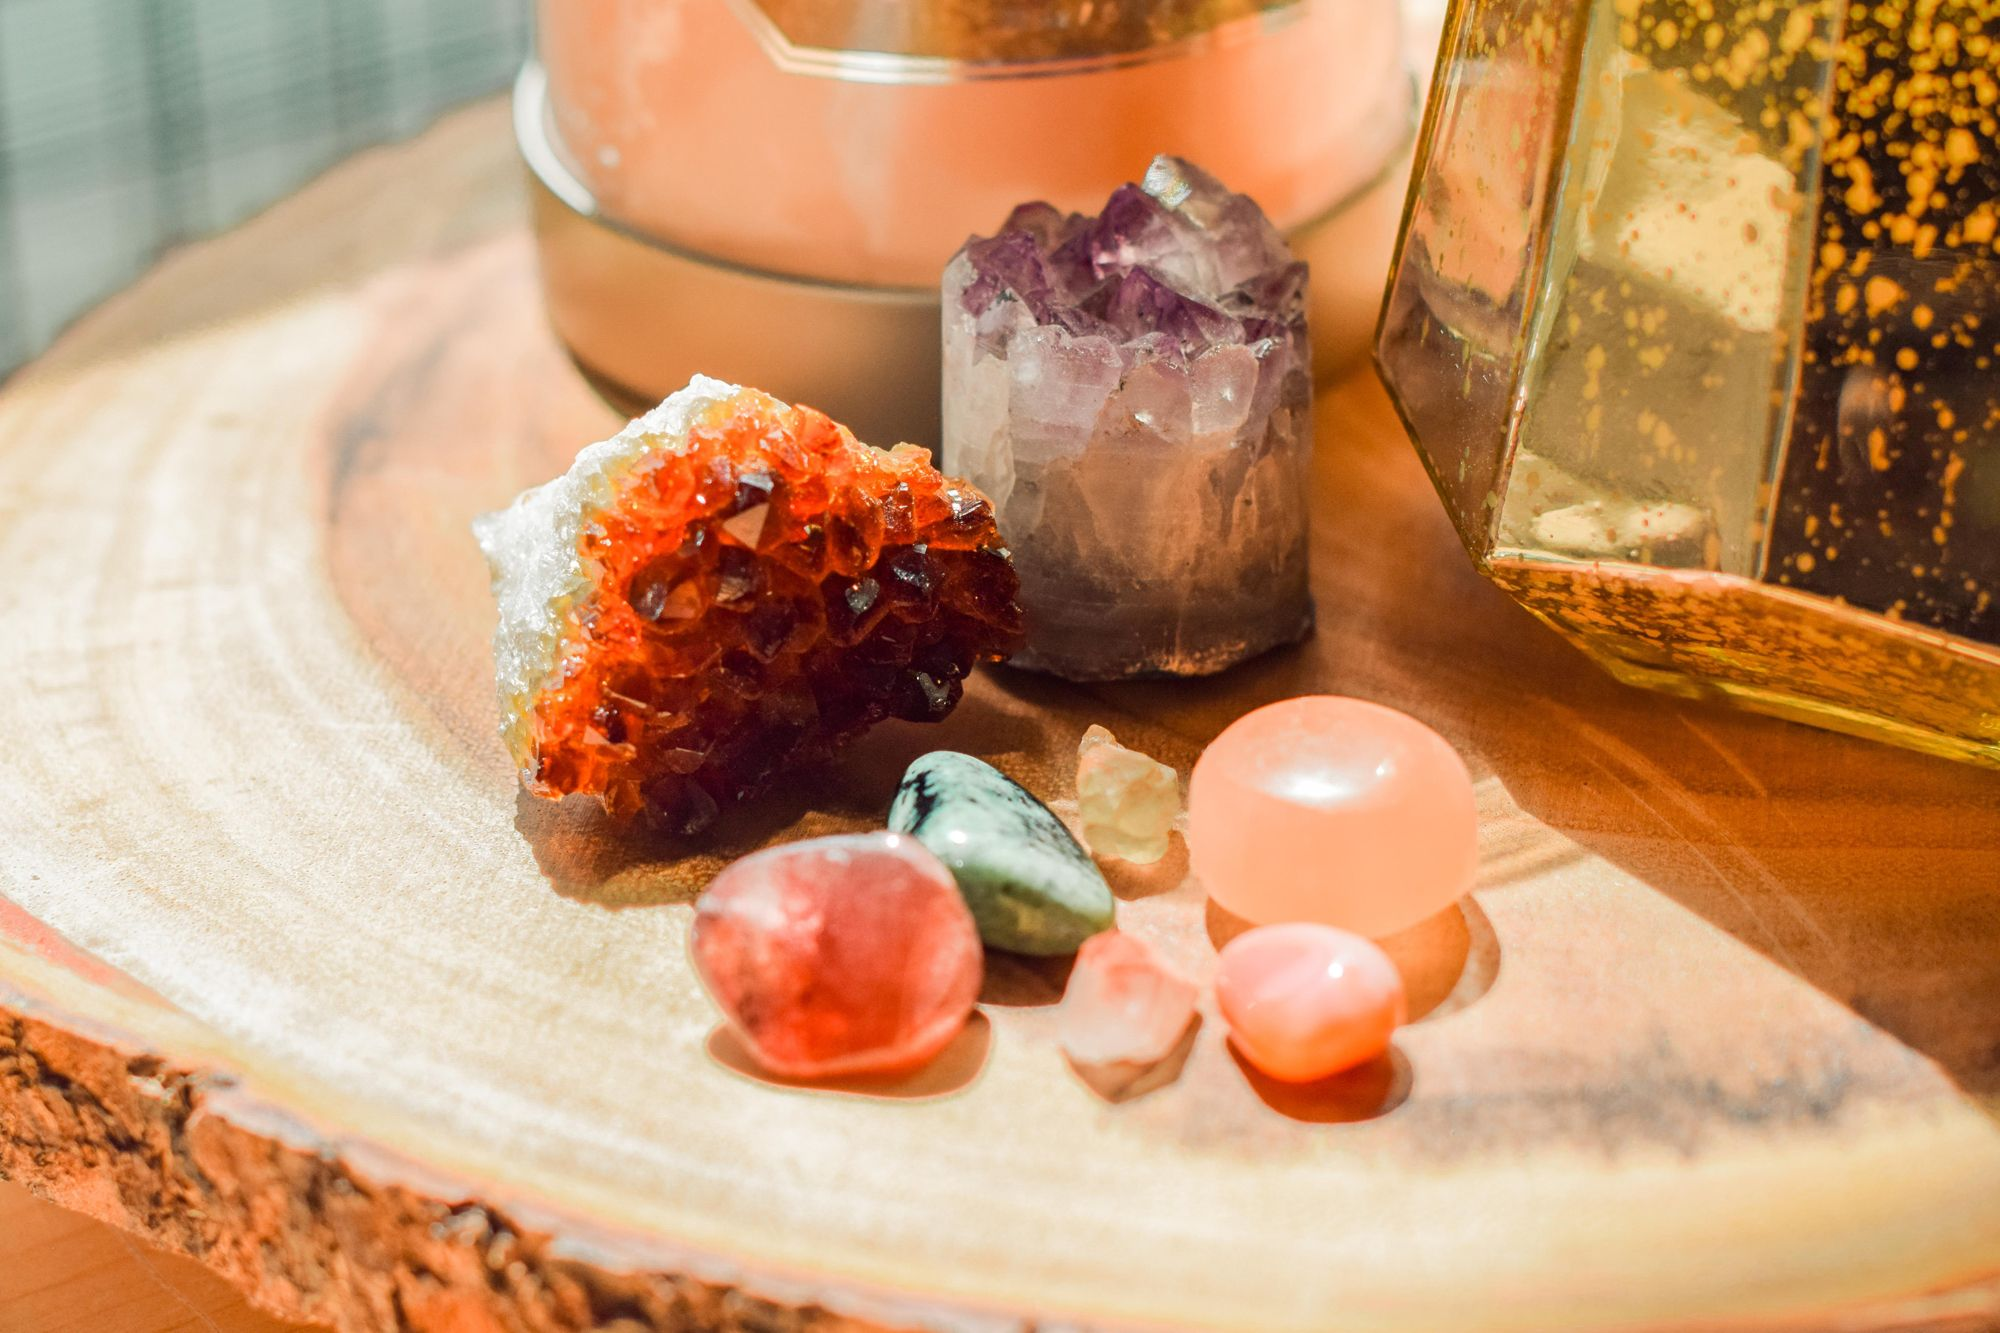 Healing crystals each contain various effects and healing purposes